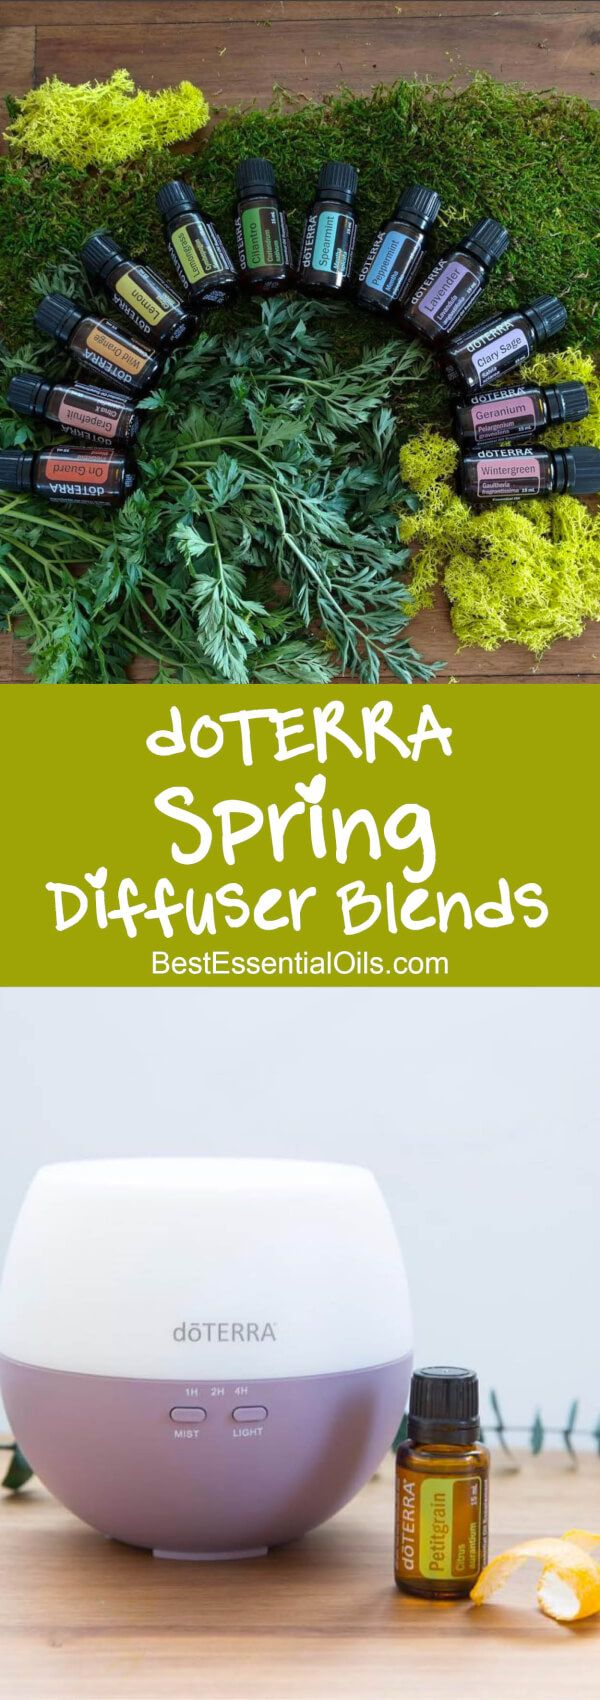 I don't know about you, but I start dreaming about Spring right after Christmas. Yes. There are nice diffuser blends and there's something to be said for living/diffusing in the current. But, come on! These spring diffuser blends really help with my spring fever. They let the smells of spring in my house, without the …